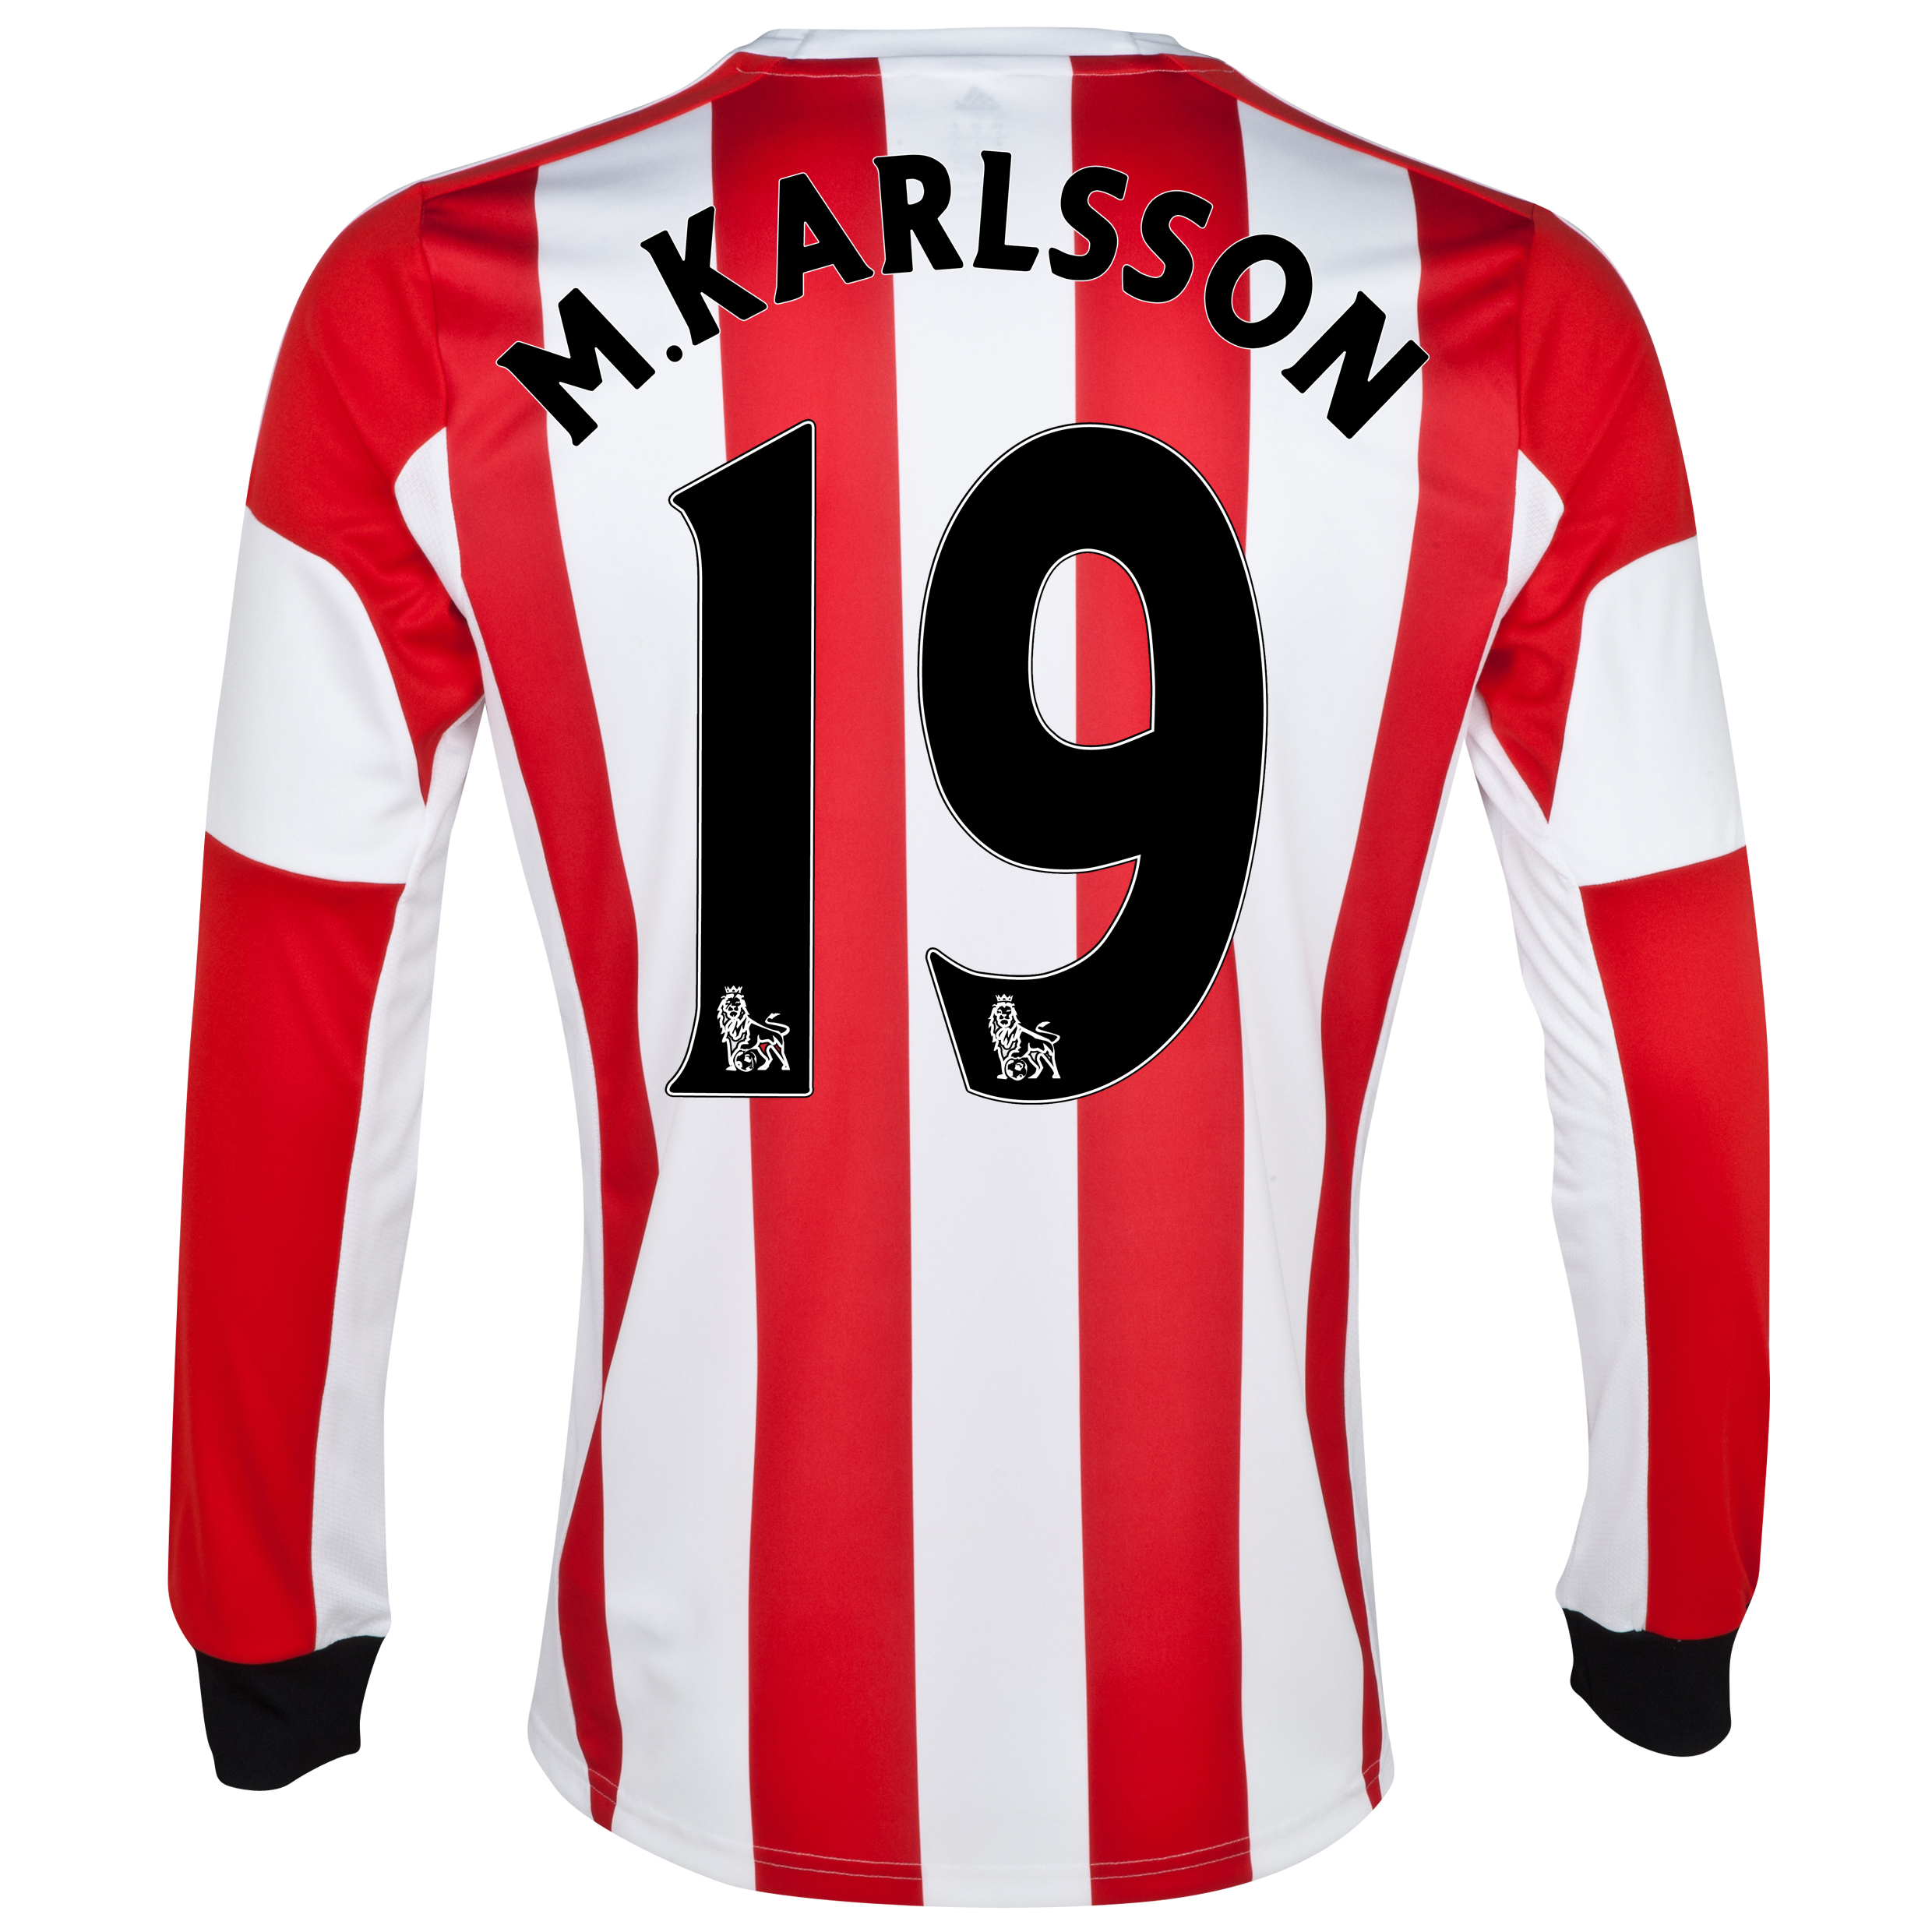 Sunderland Home Shirt 2013/14 - Long Sleeved - Junior with M.Karlsson 19 printing